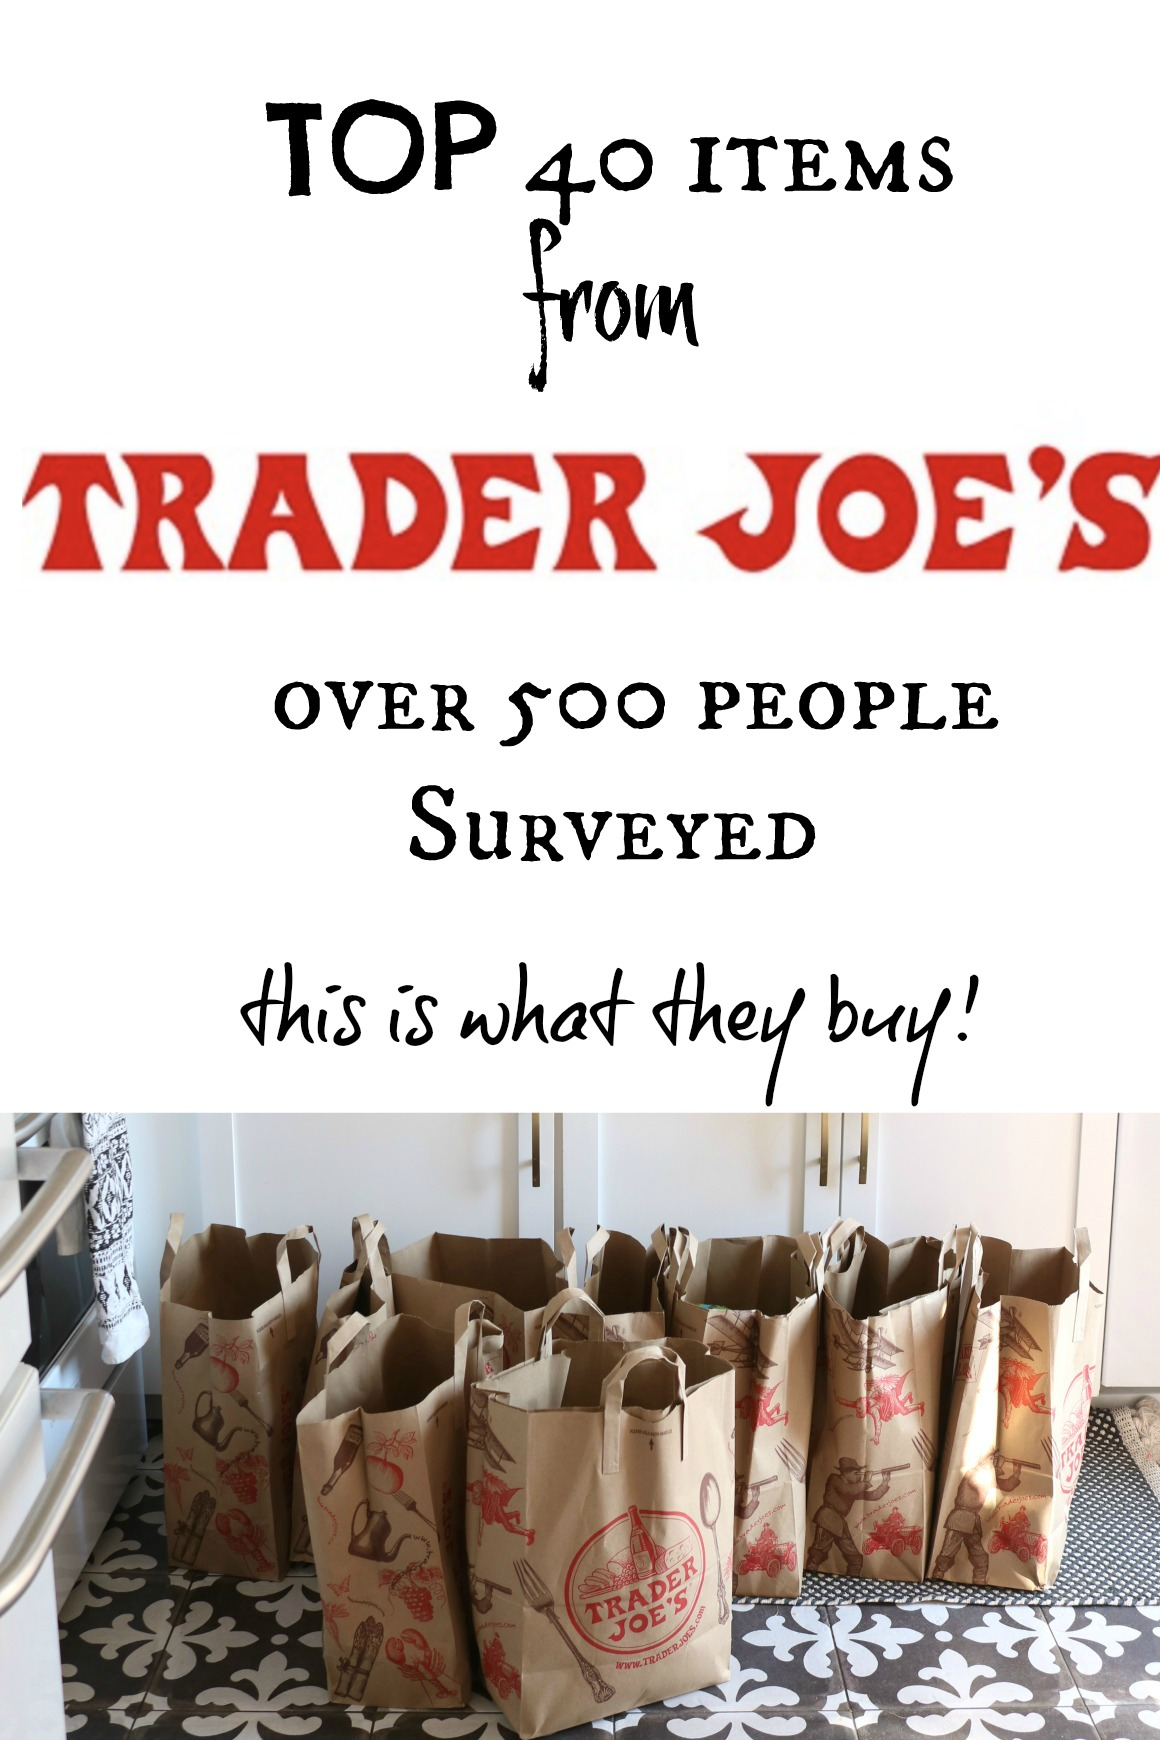 Trader Joe's Top 40 Items out of a 500 person Survey